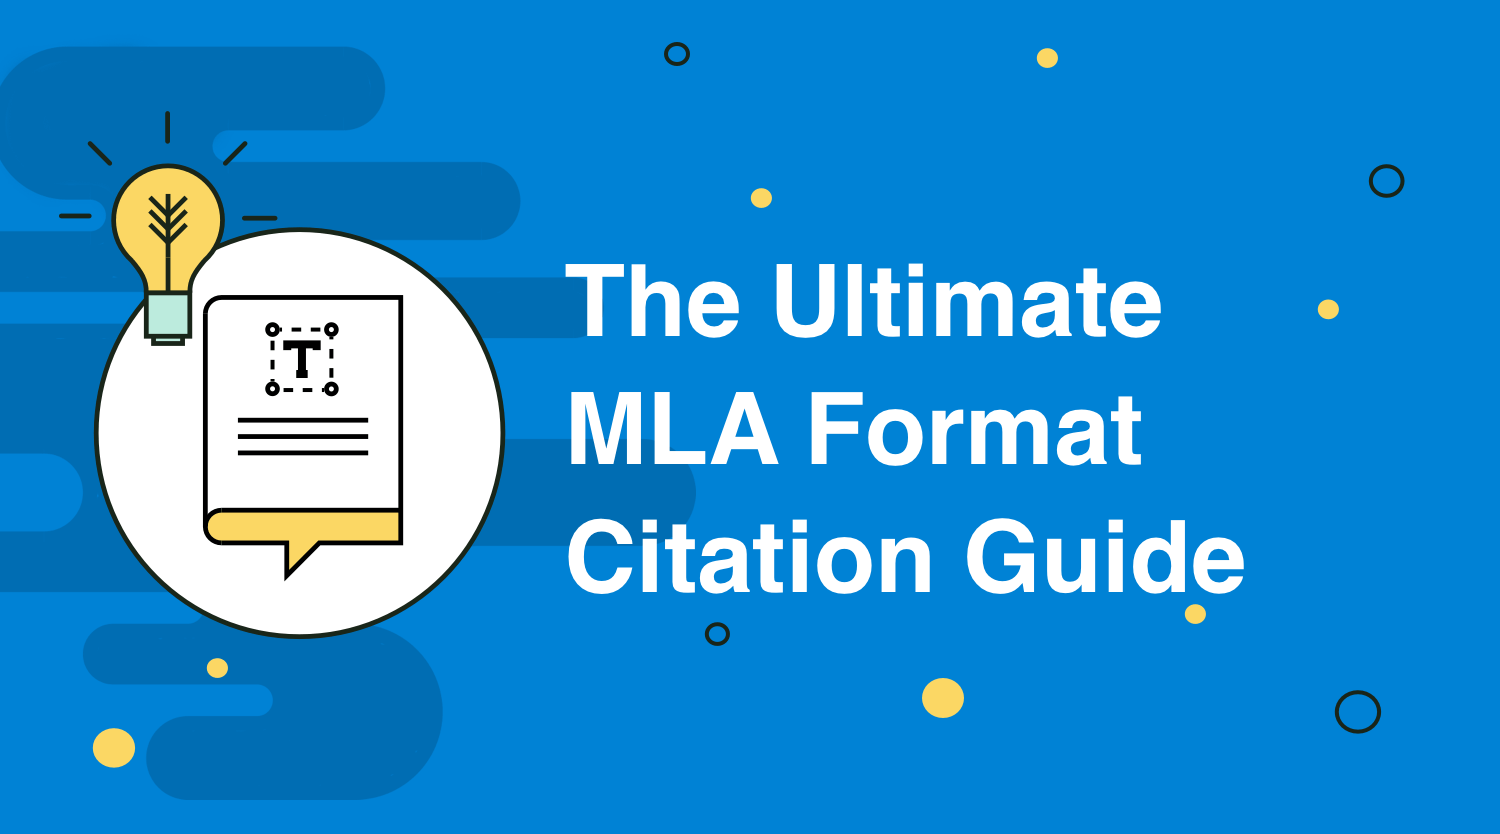 The Ultimate MLA Format Citation Guide